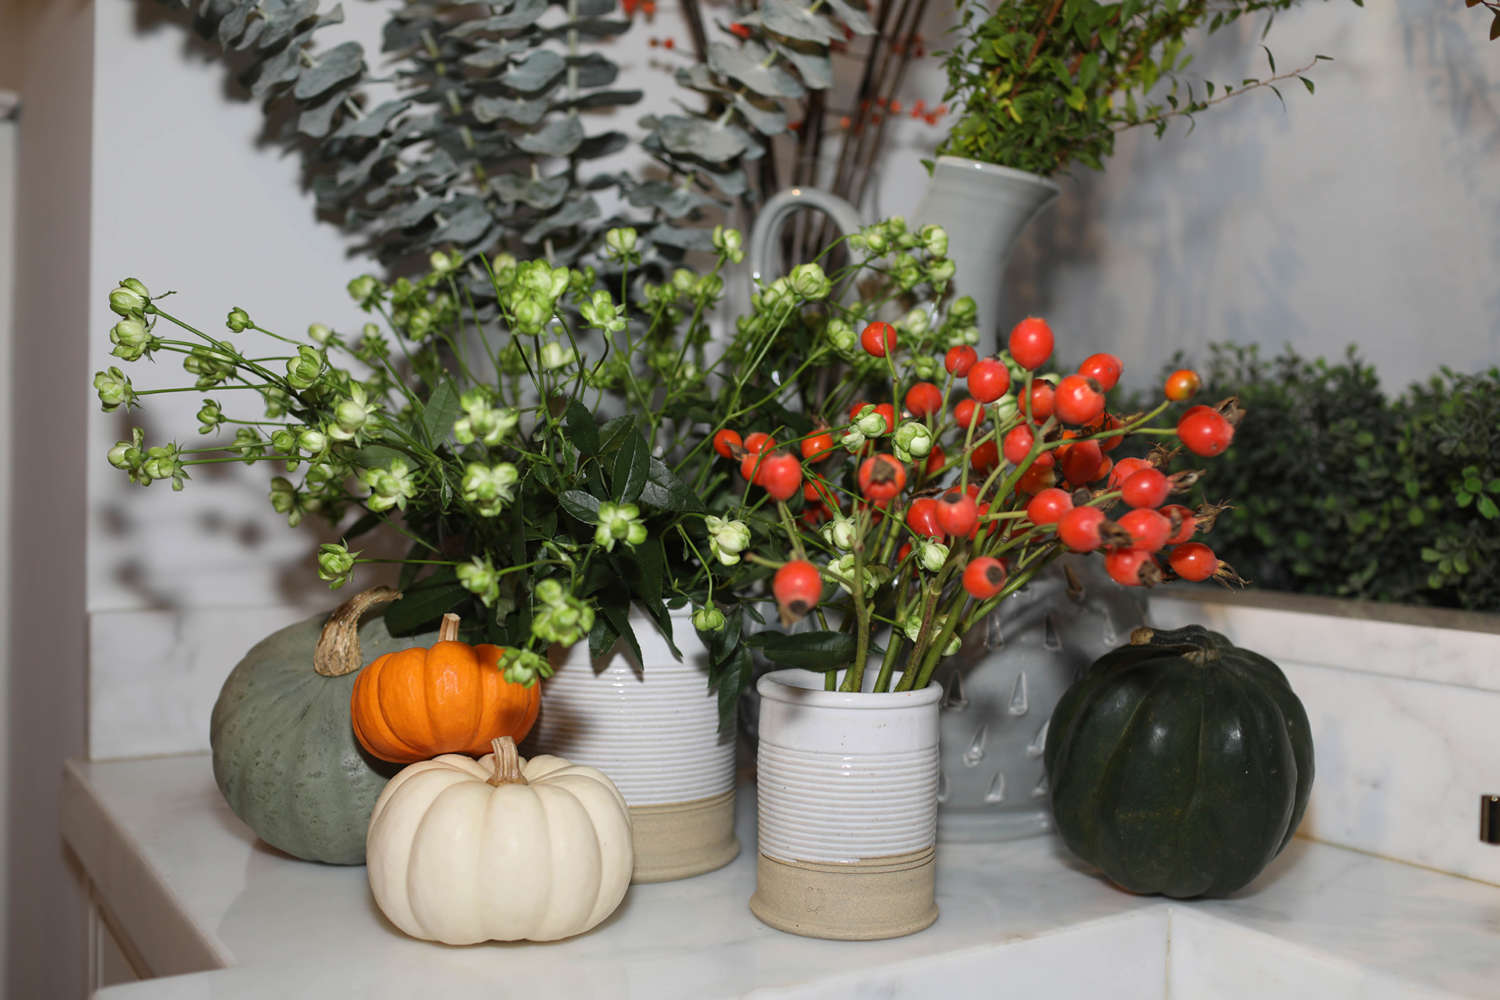 Pumpkin and bittersweet arrangement.